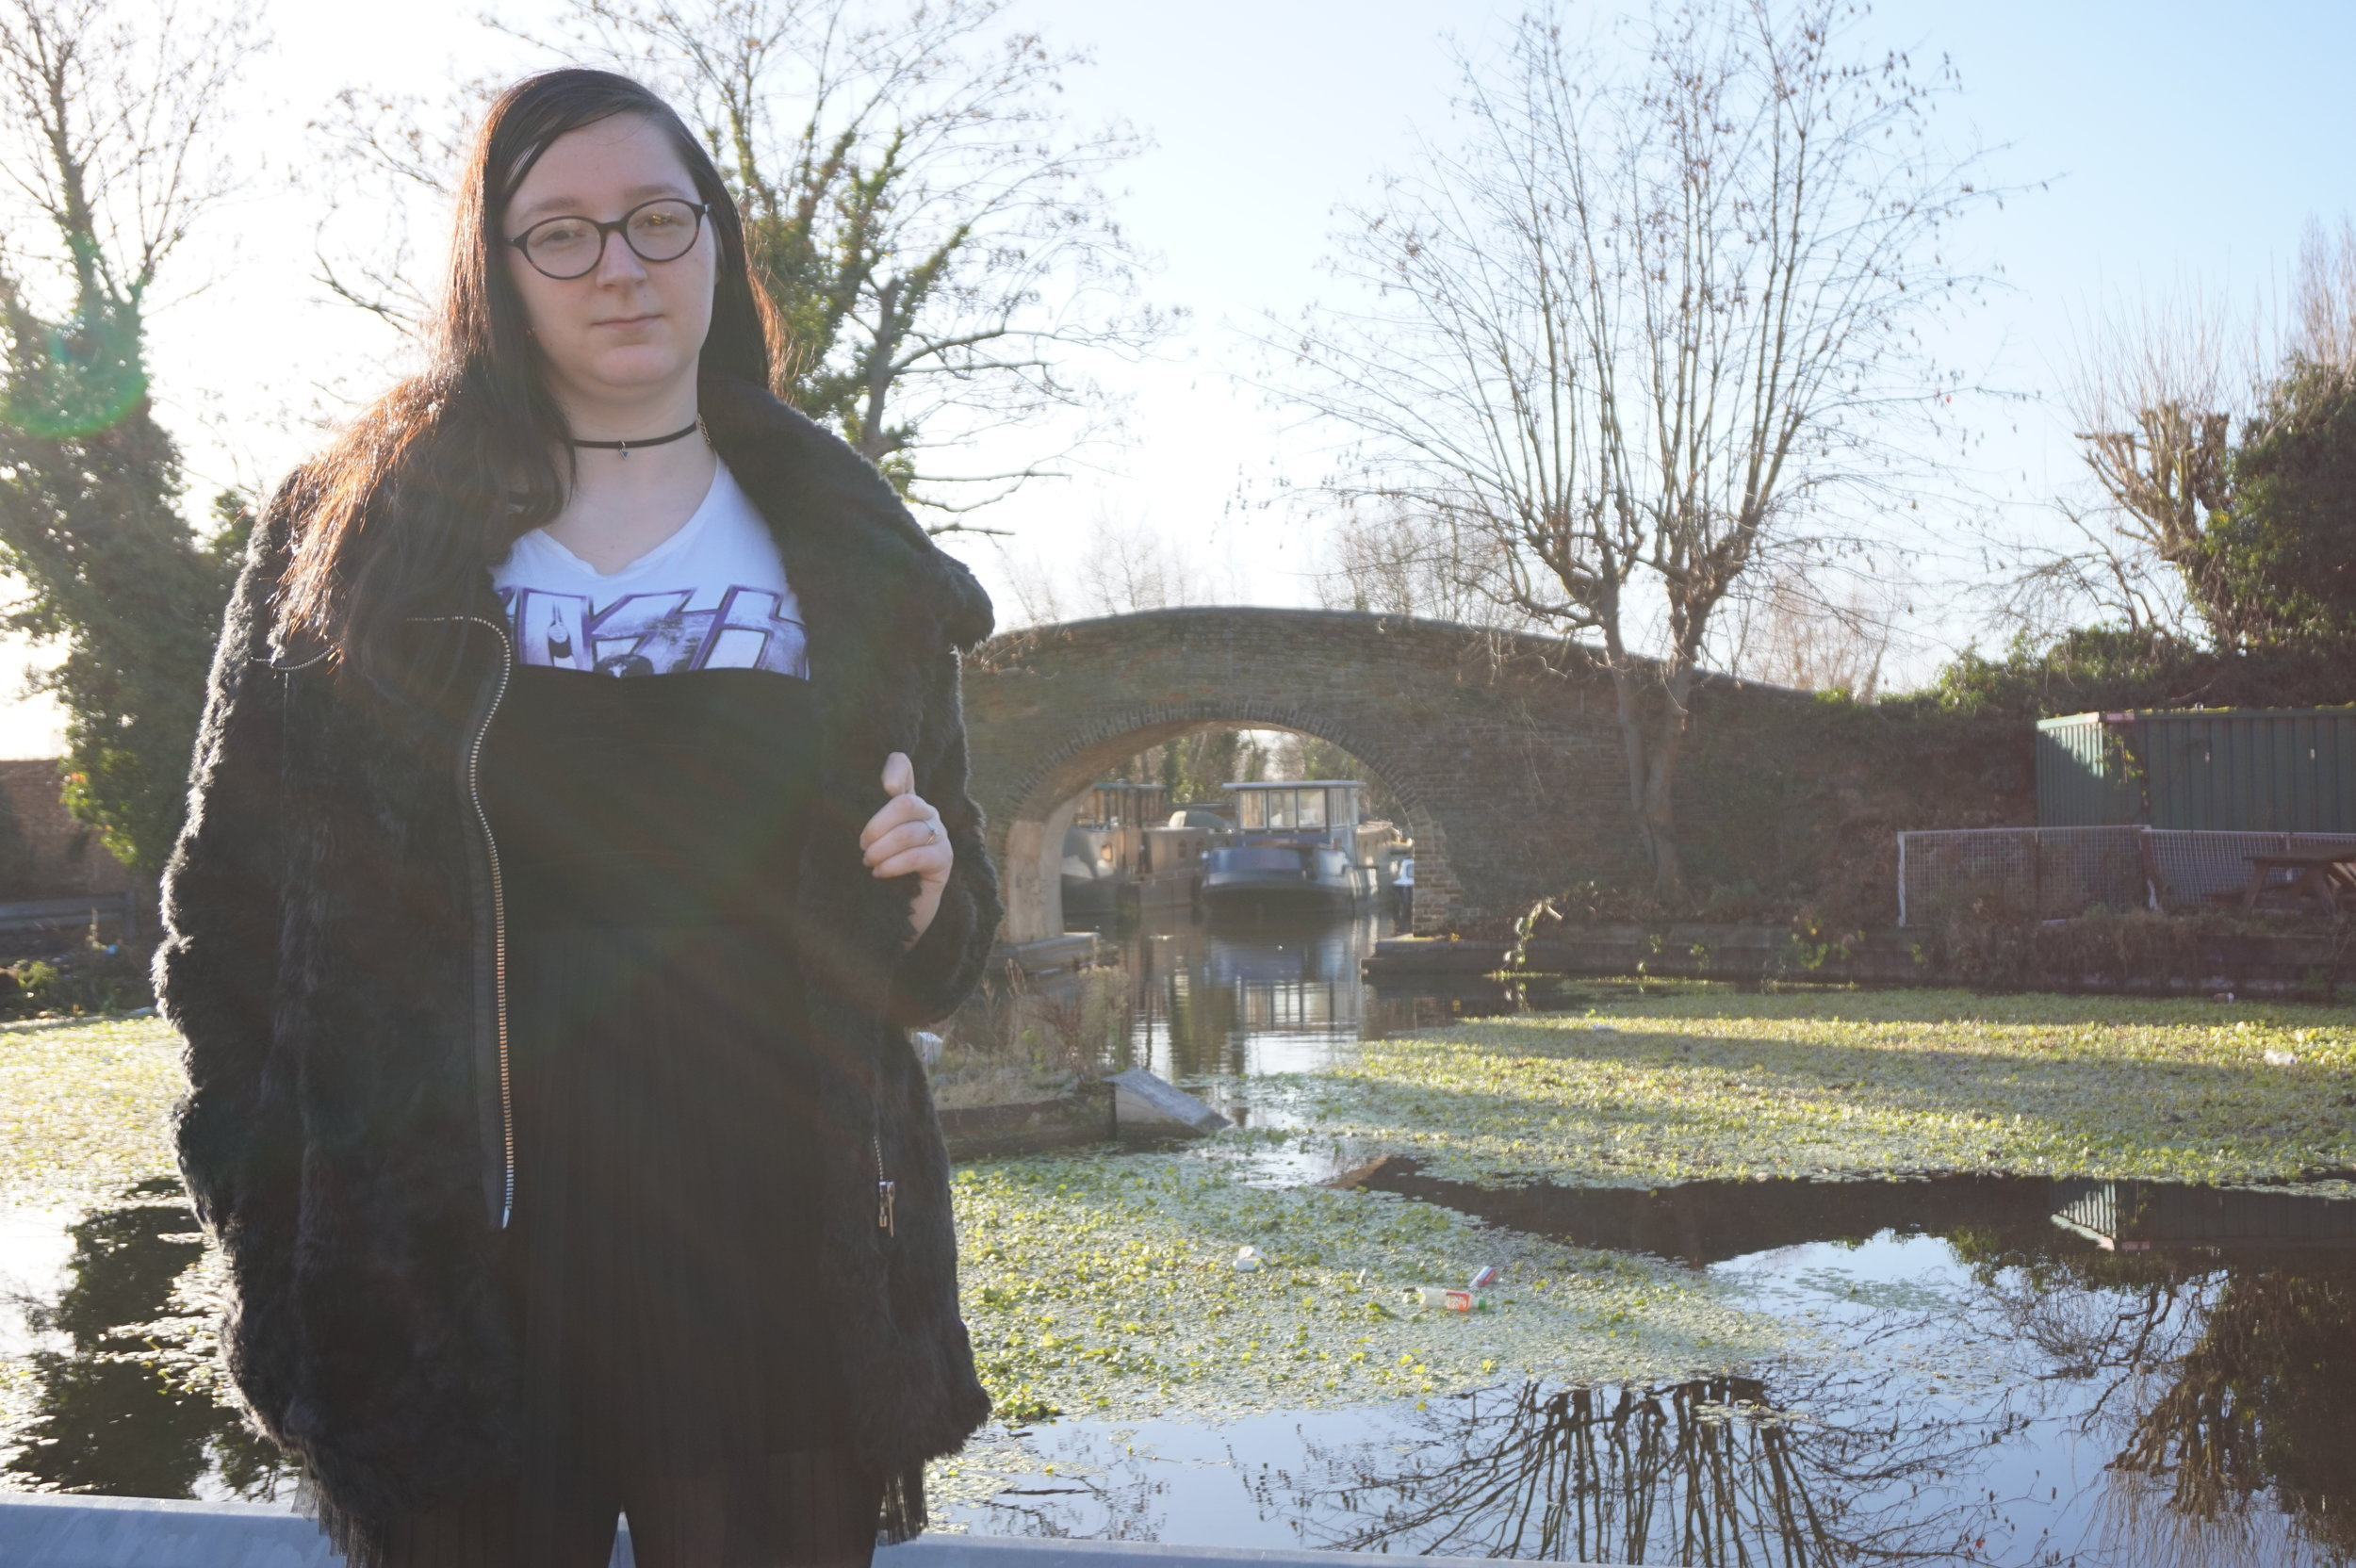 london fashion blogger ootd alternative outfit of the day